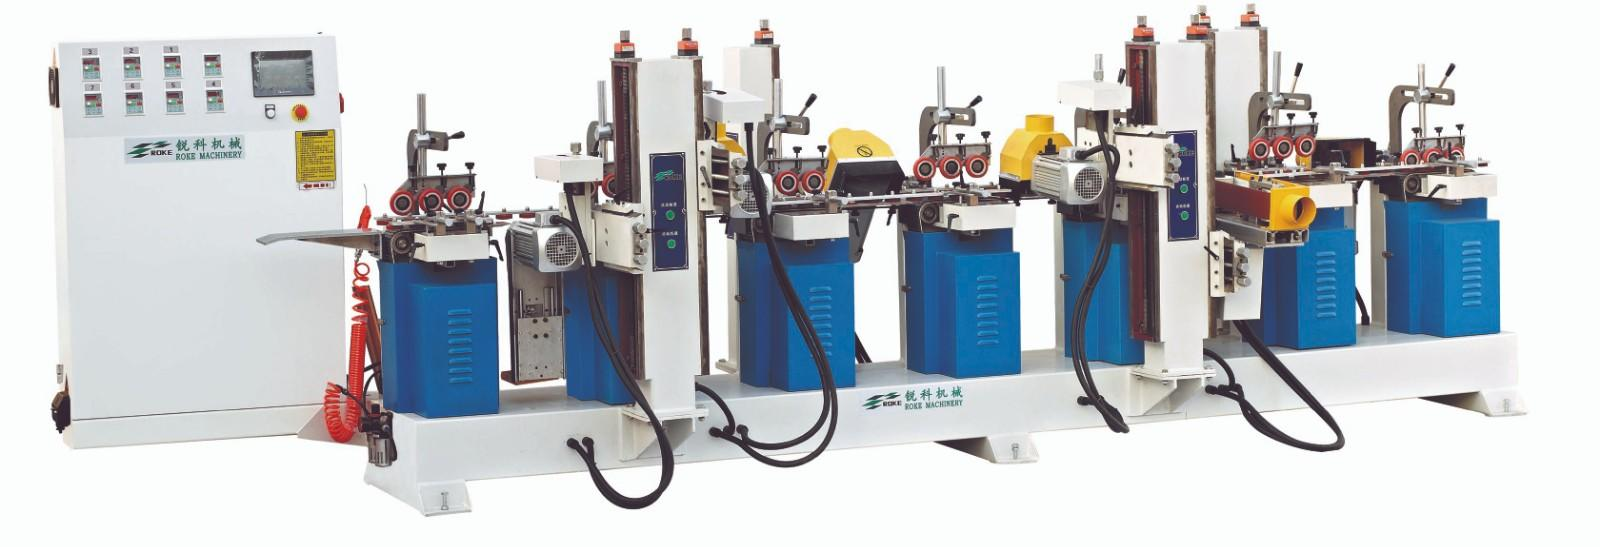 super tough bench grinding machine hard curve supplier for wood sawing-2